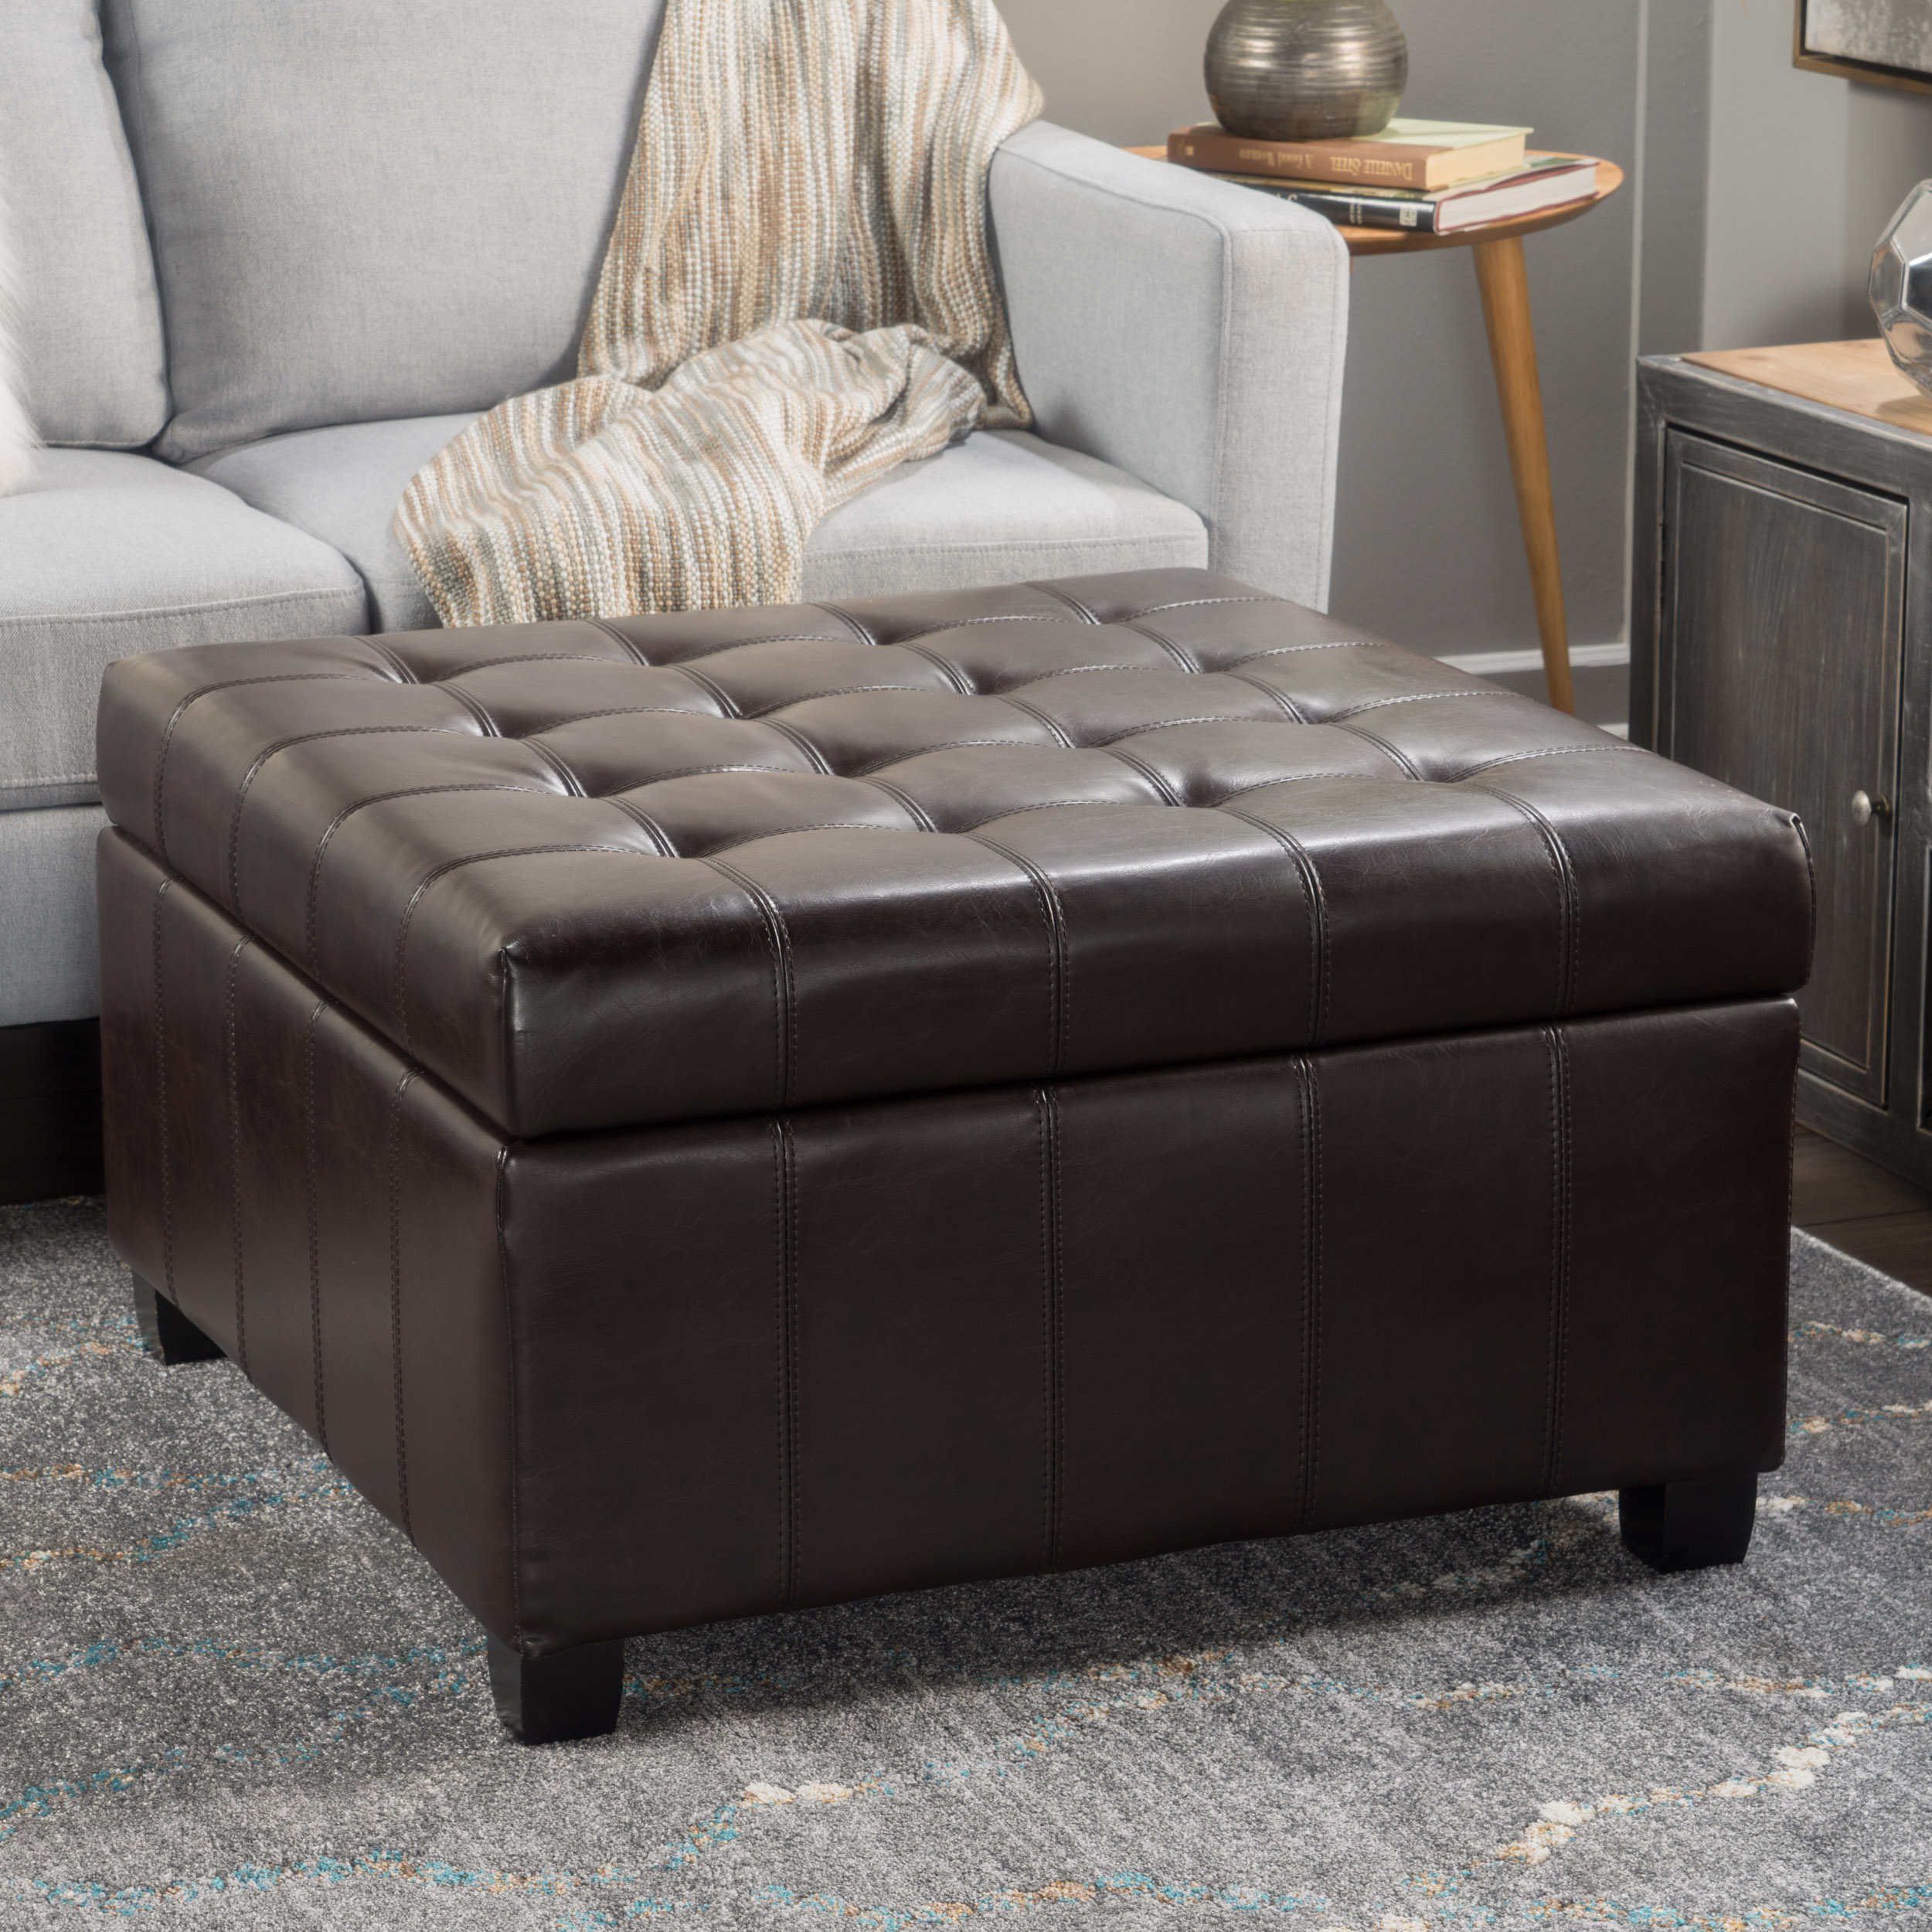 Alondra Brown Bonded Leather Storage Ottoman